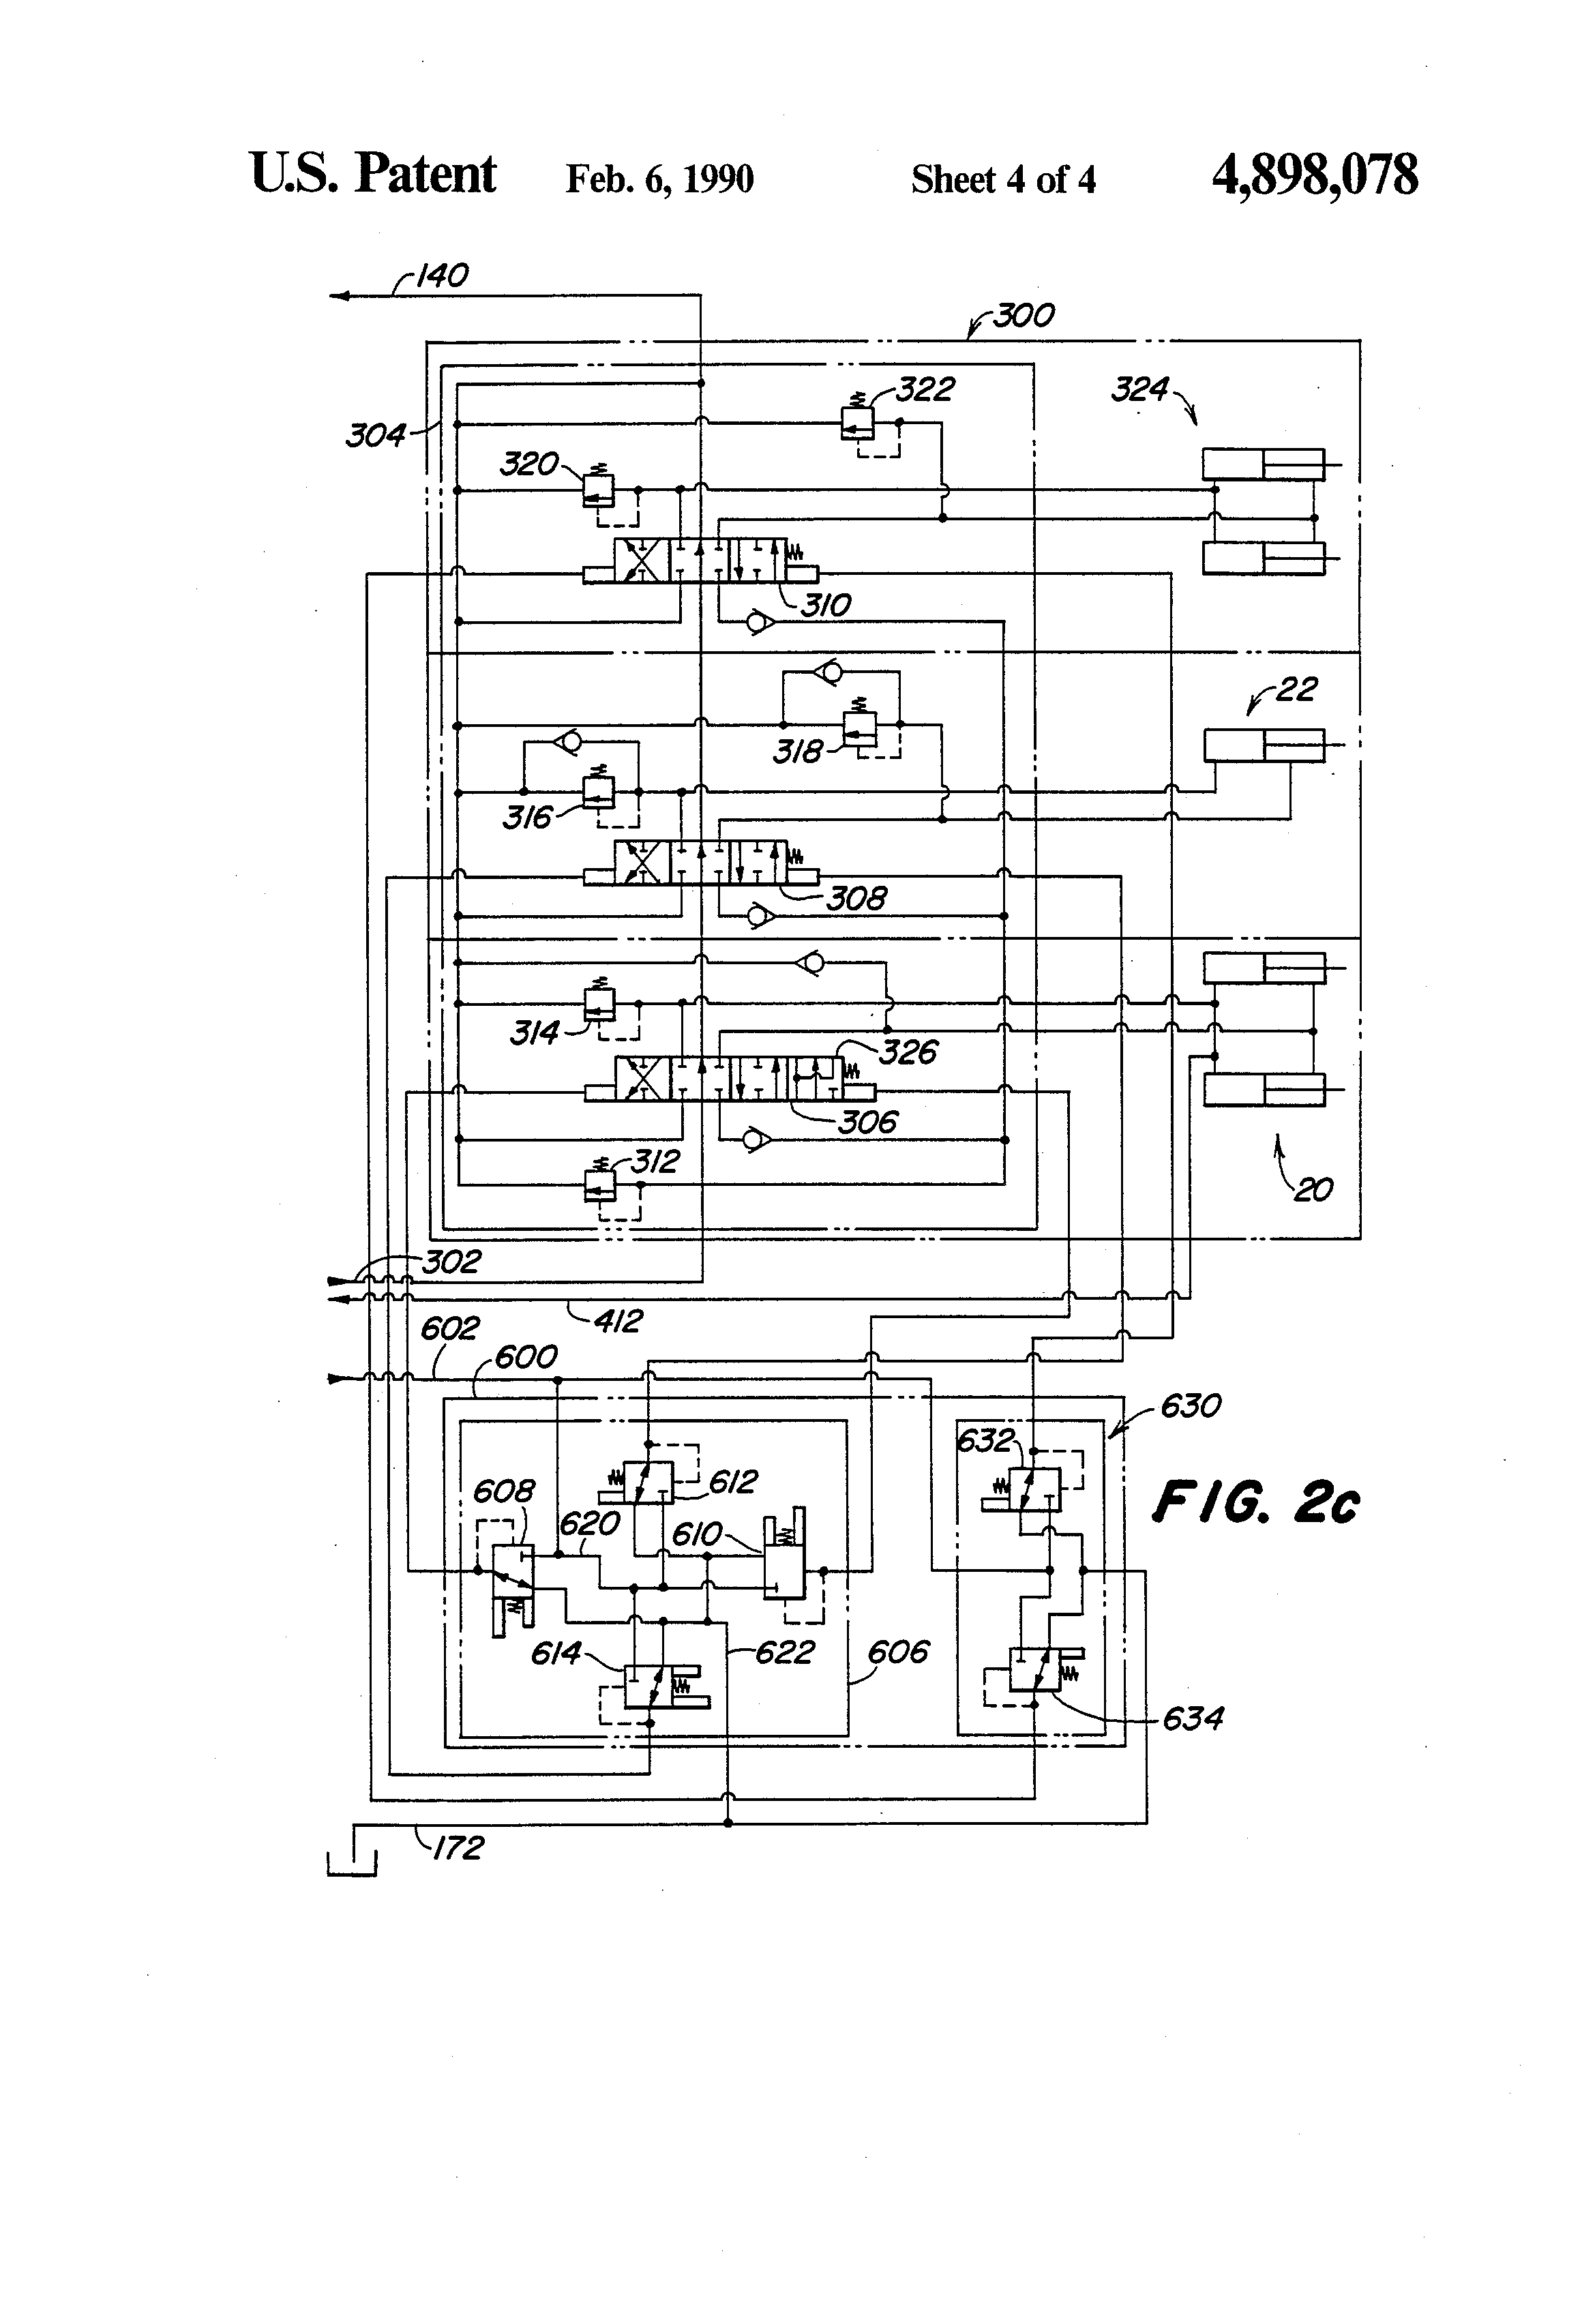 US4898078 as well Oil Burner Pump besides Eaton Load Center Wiring Diagram furthermore ponents Ftt together with 3way Switch Wiring Using Nm Cable. on wiring diagram for an electrical outlet